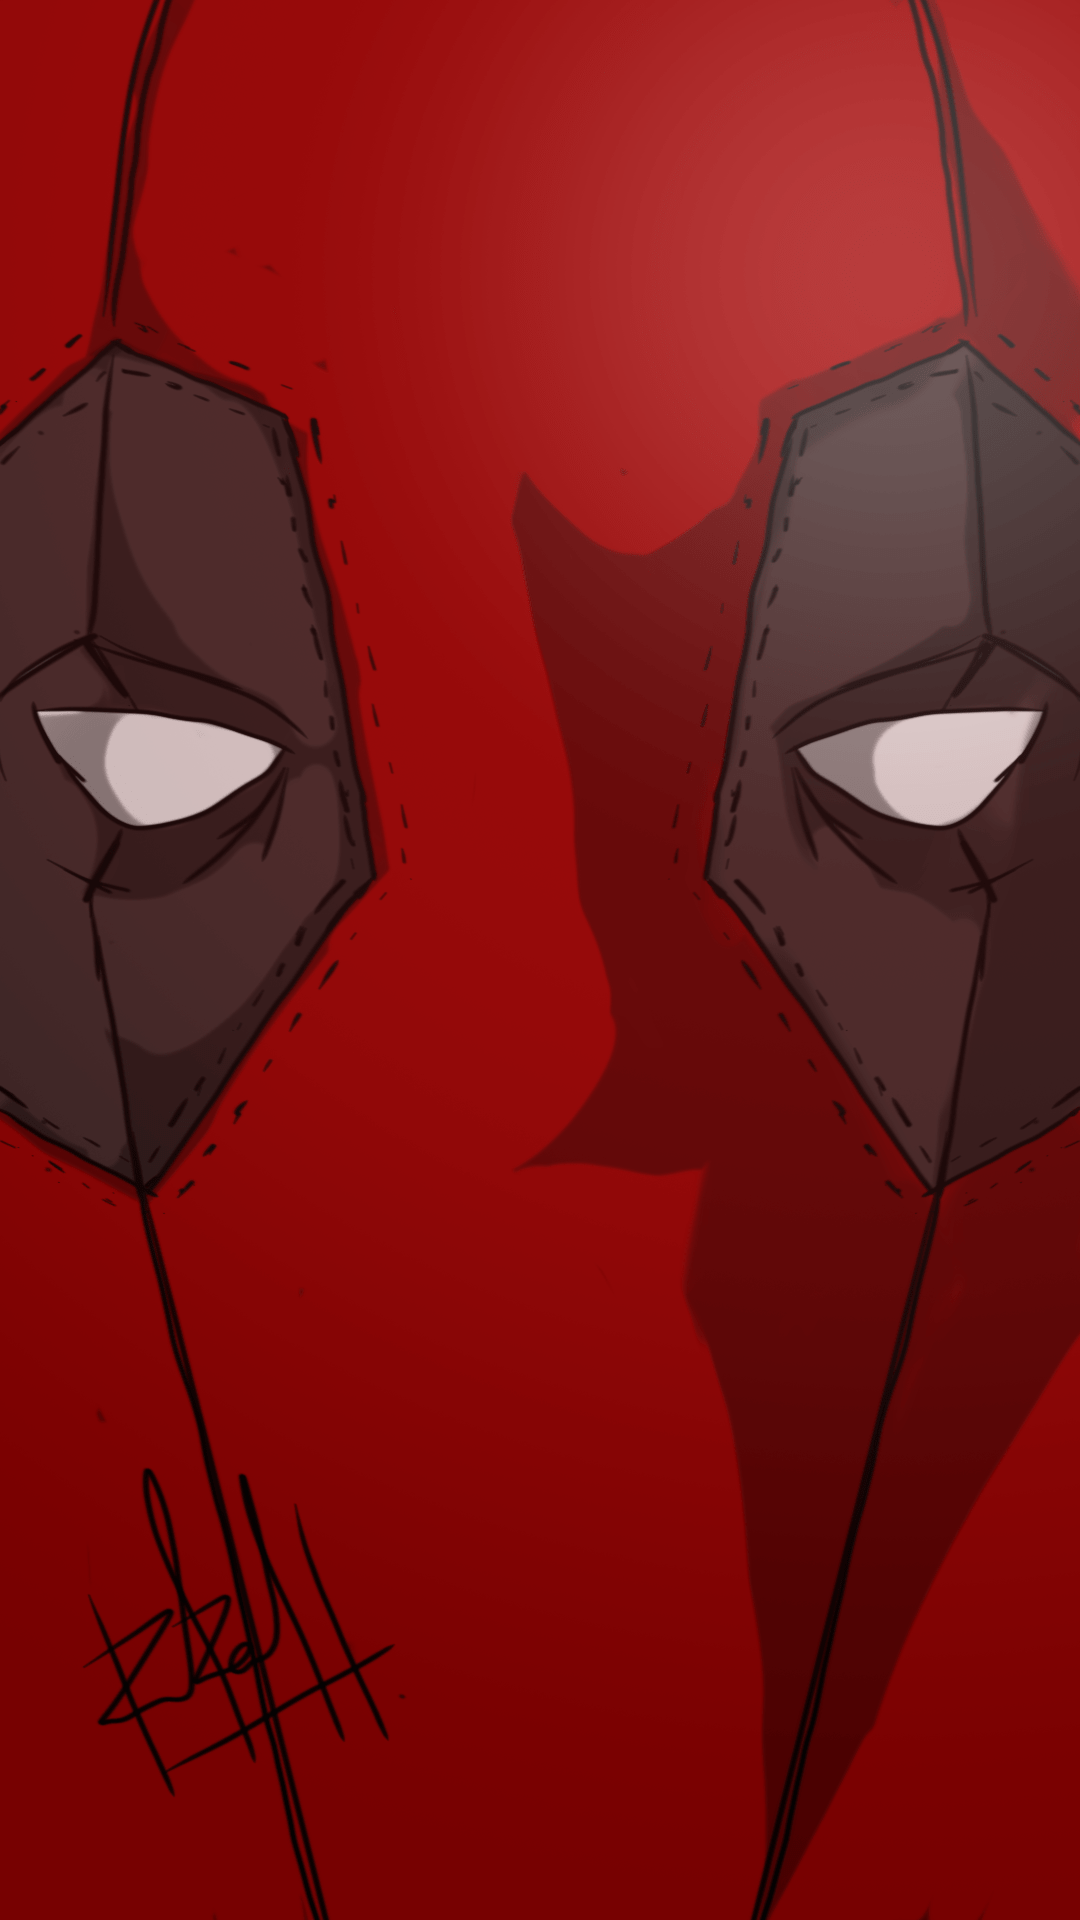 Deadpool wallpaper by Thennarasu on Newgrounds Deadpool wallpaper